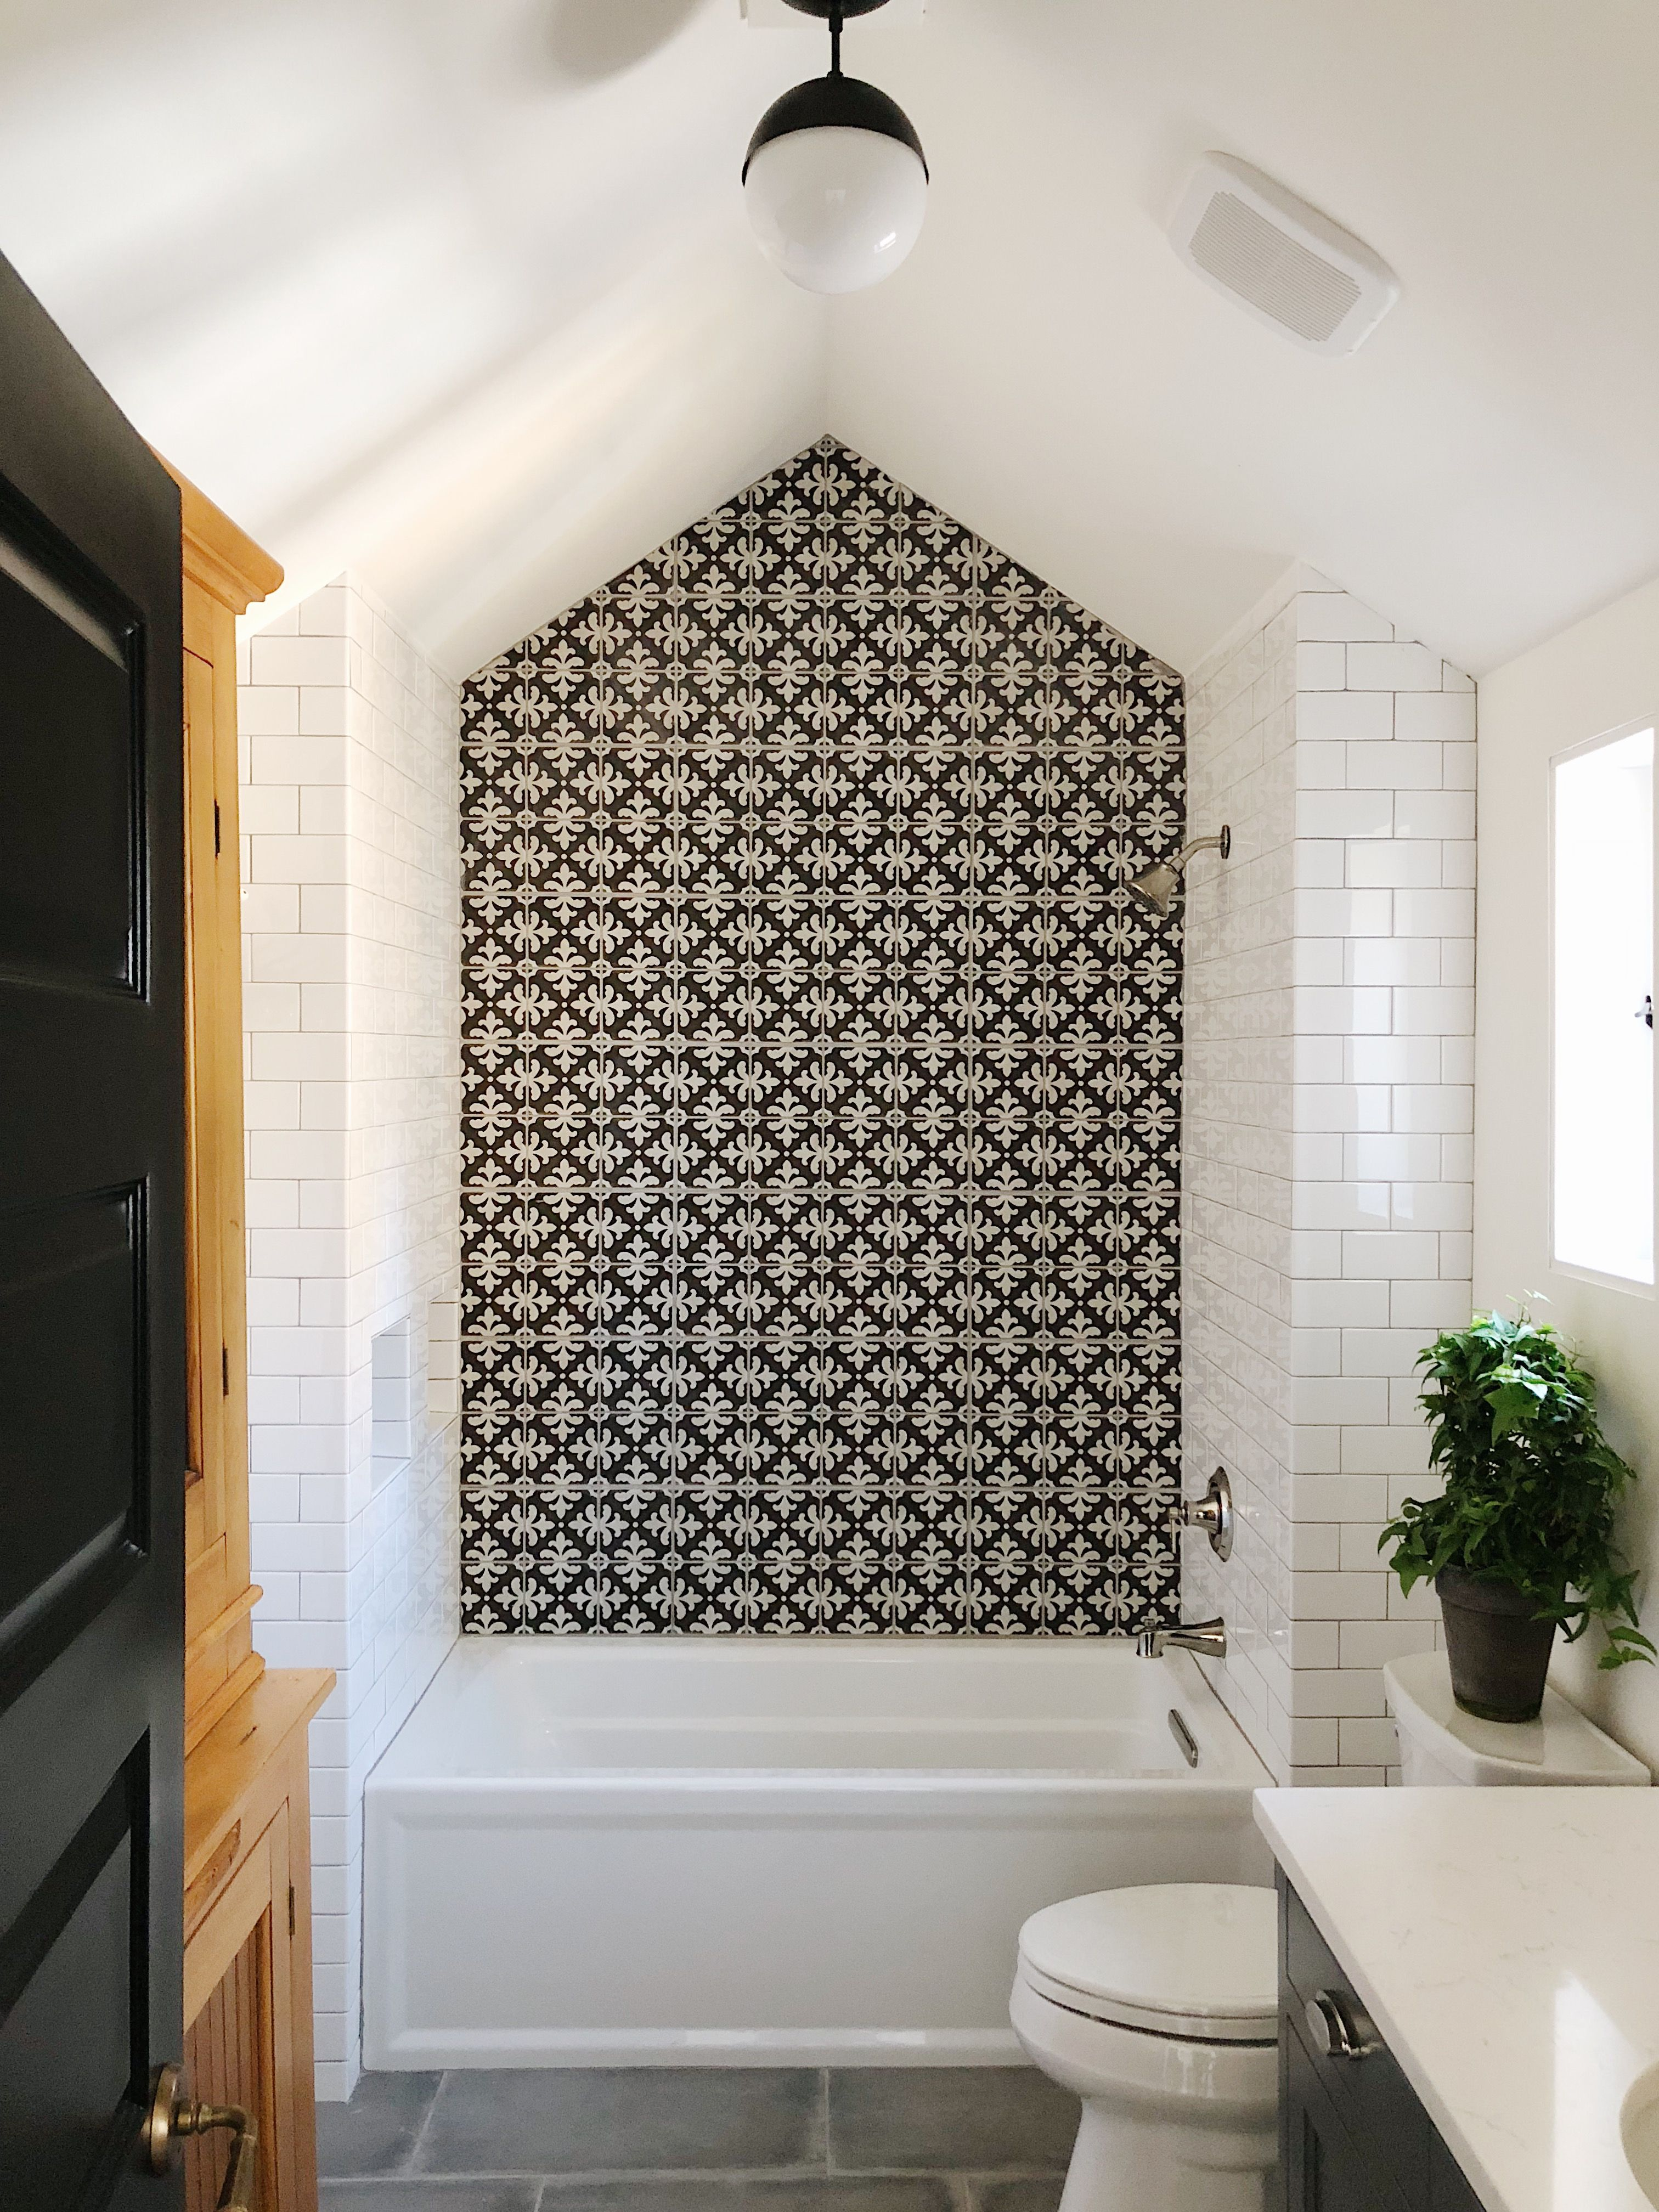 Instead Of Black And White Accent Wall Could Continue With Subway Tiles Farmhouse Shower Bathroom Tile Designs White Subway Tile Bathroom